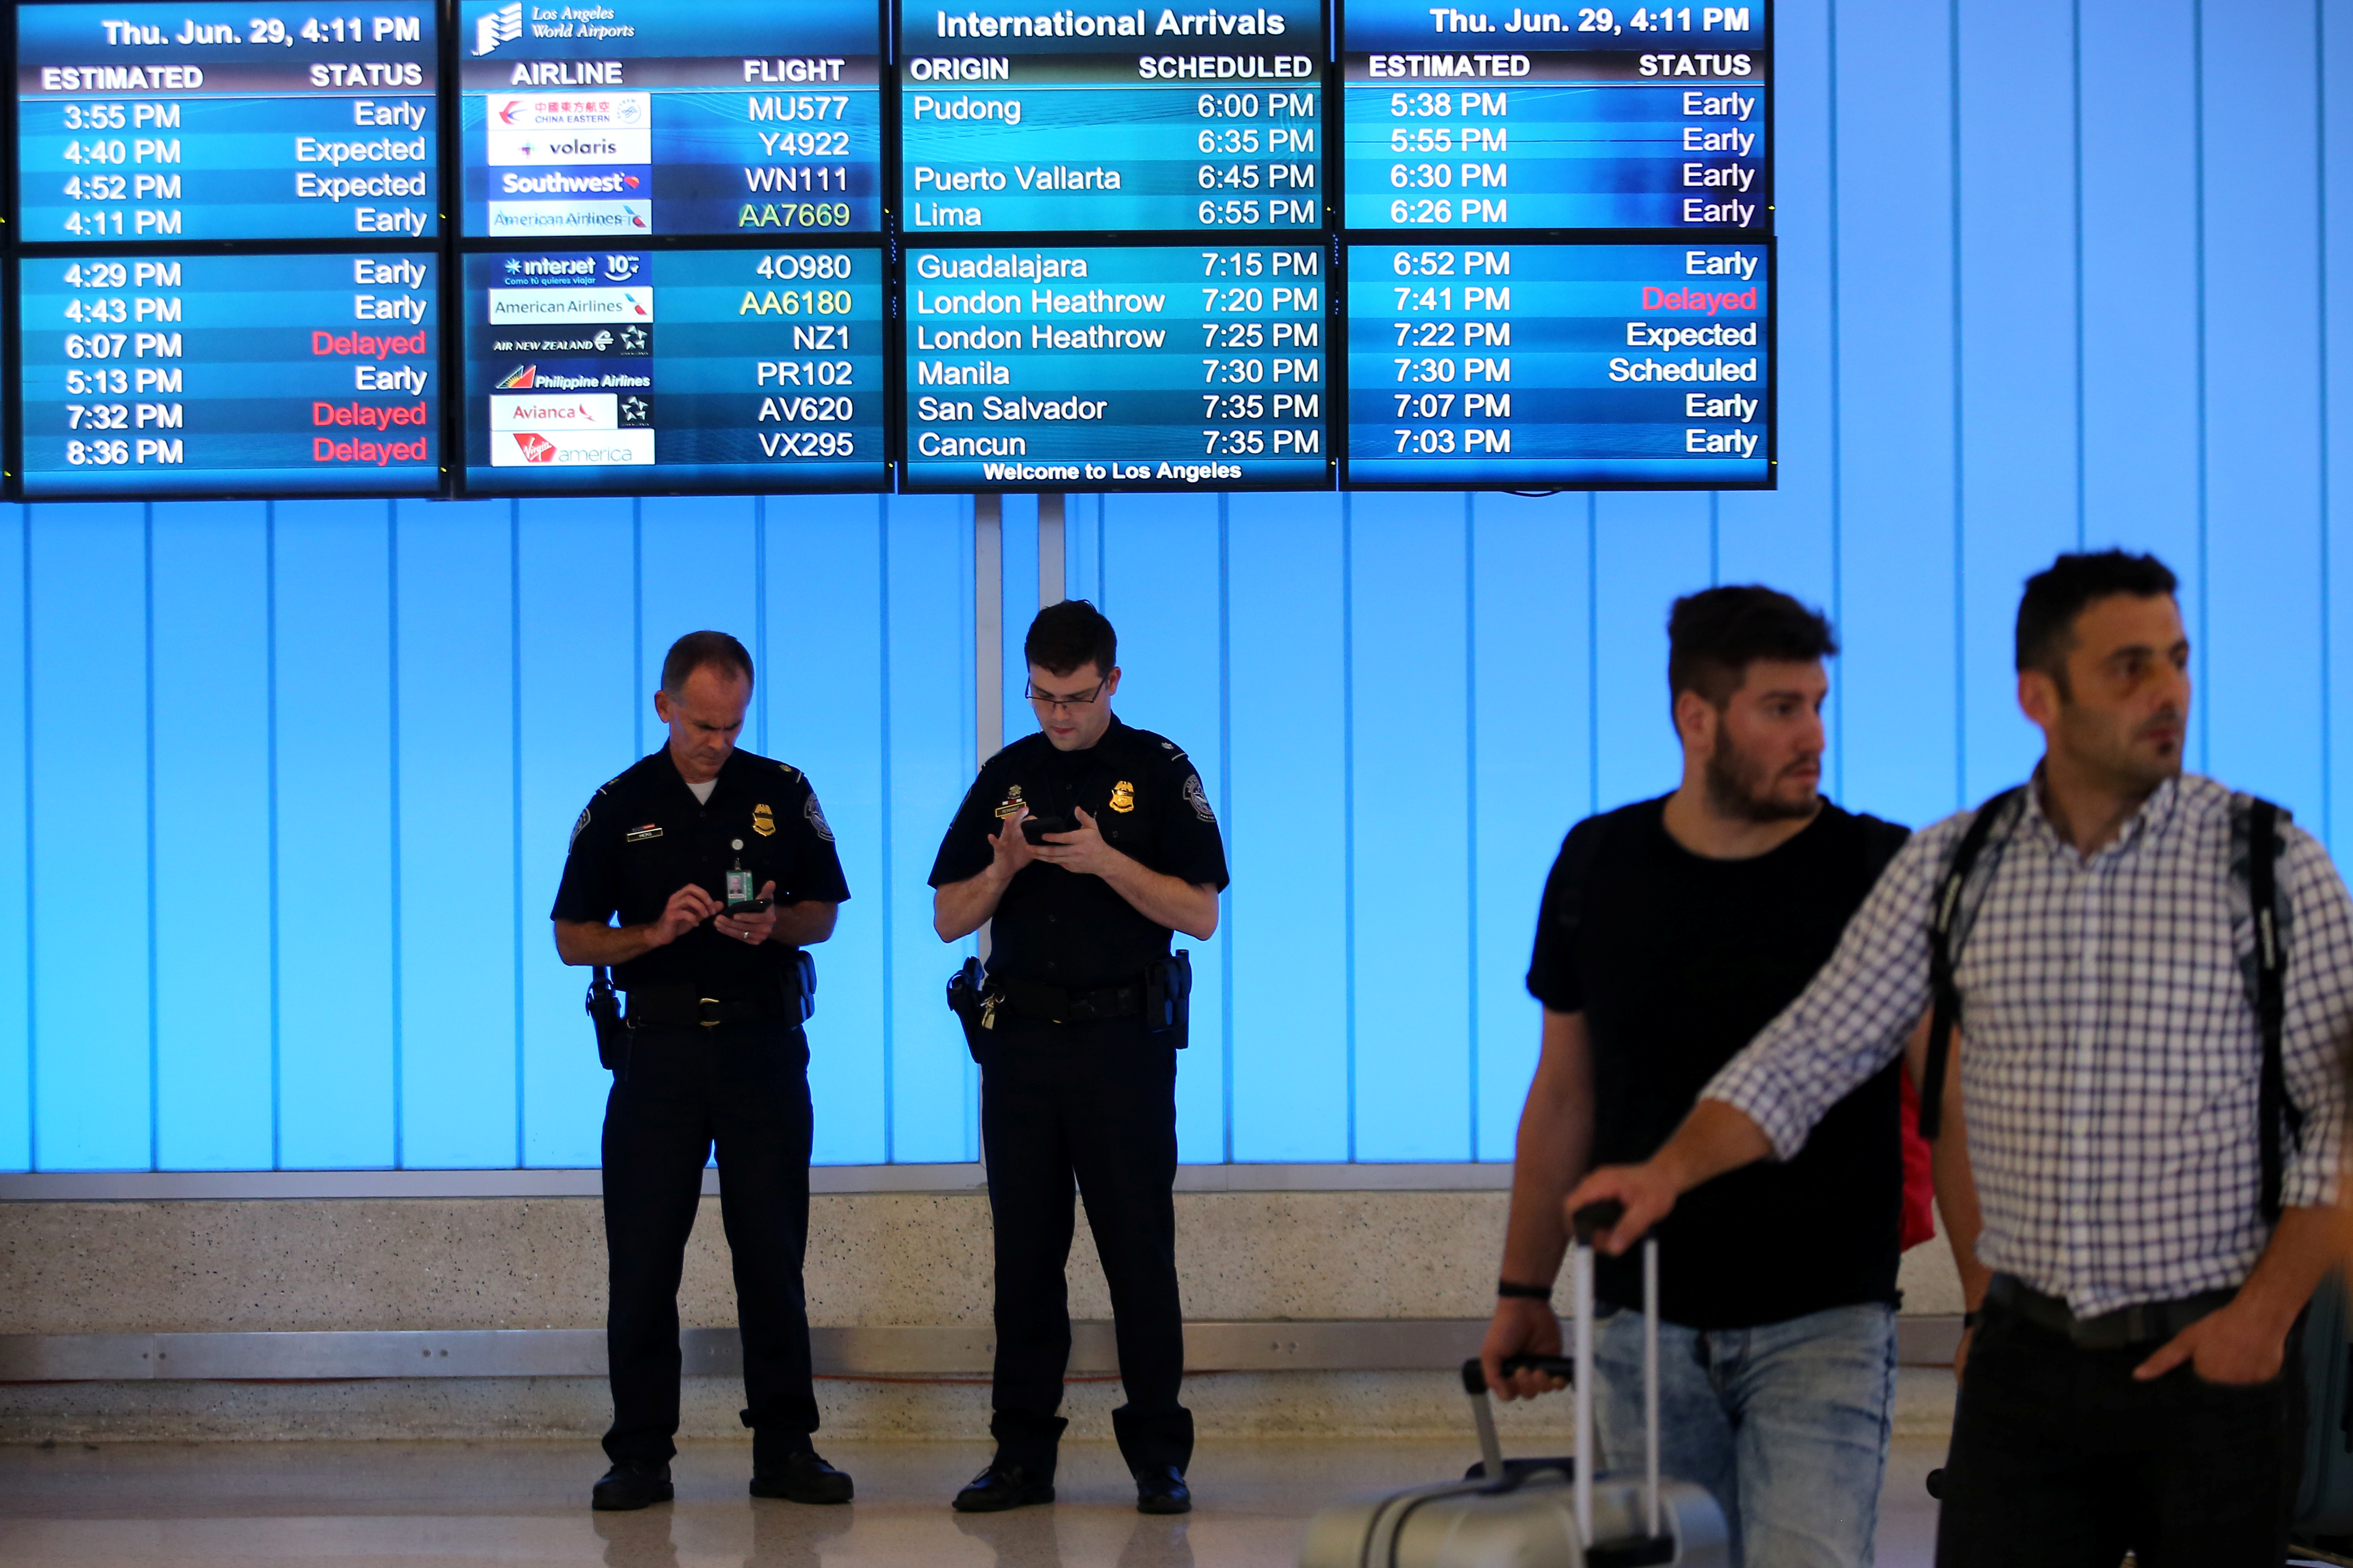 US Customs and Immigration officers keep watch at the arrivals level at Los Angeles International Airport, June 29, 2017